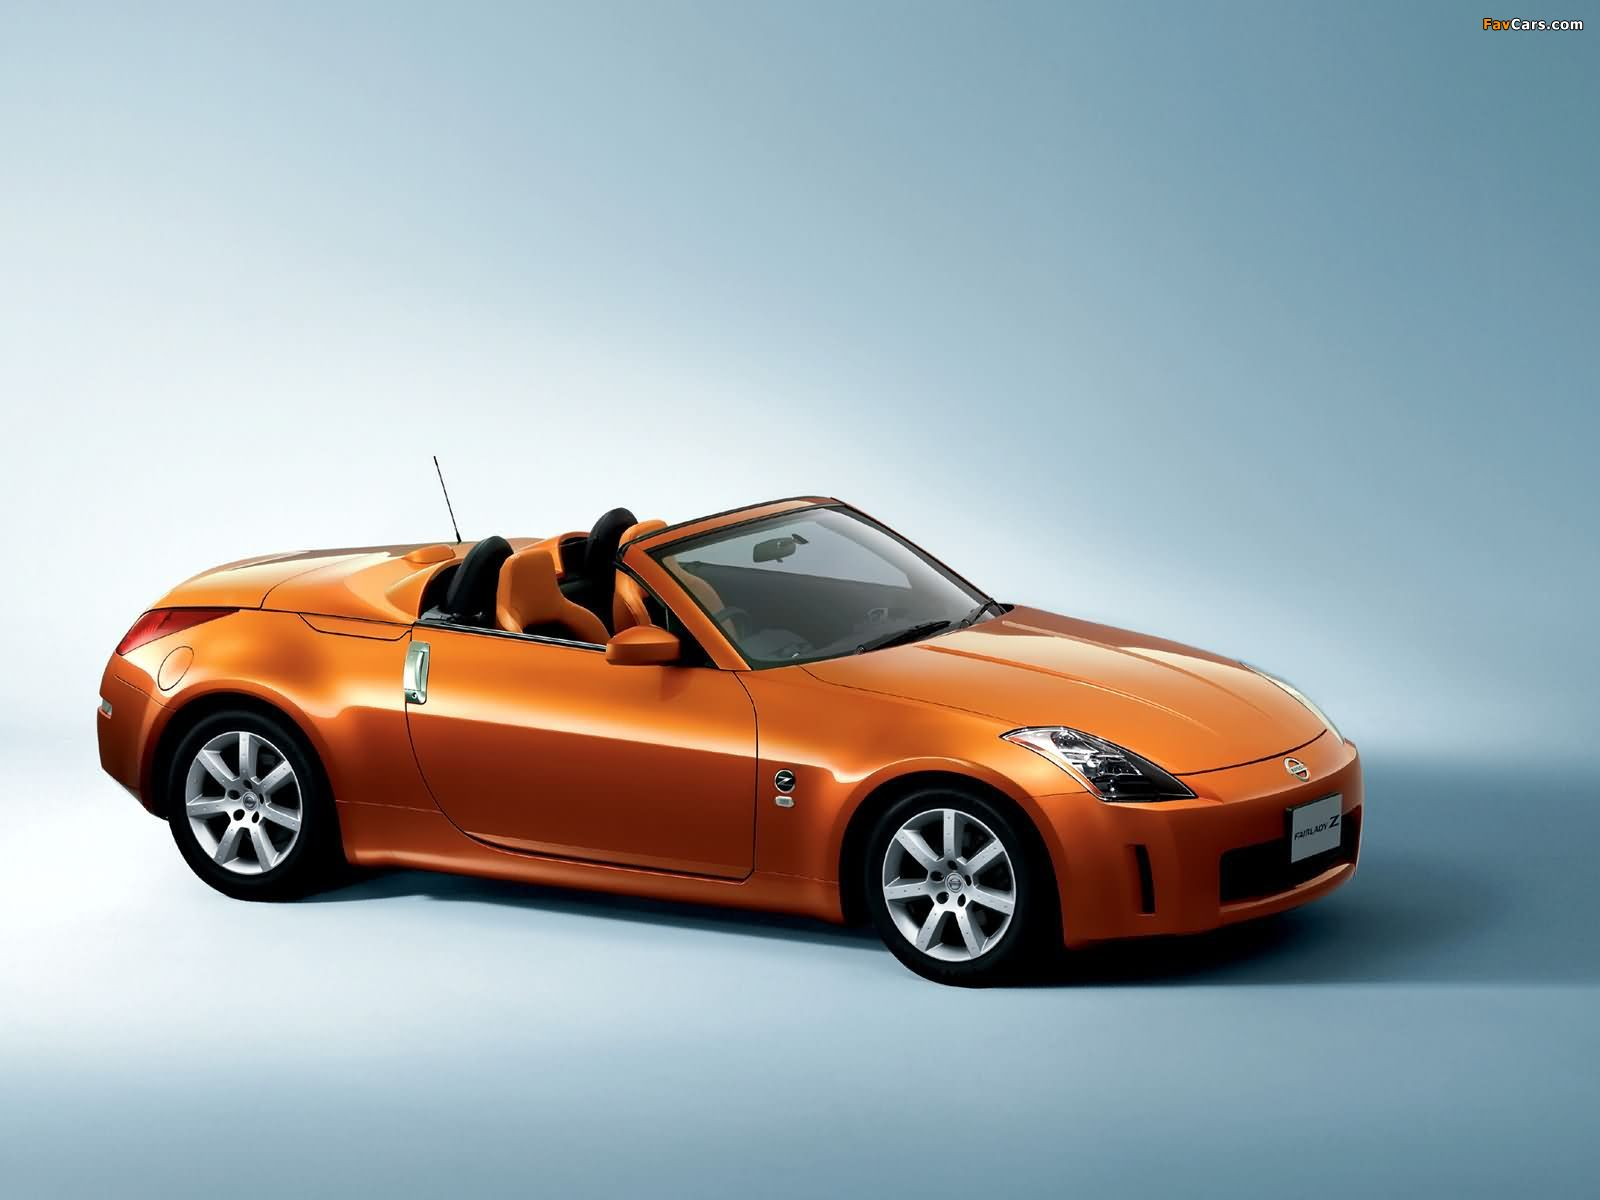 2019 Nissan Fairlady Z Roadster photo - 5